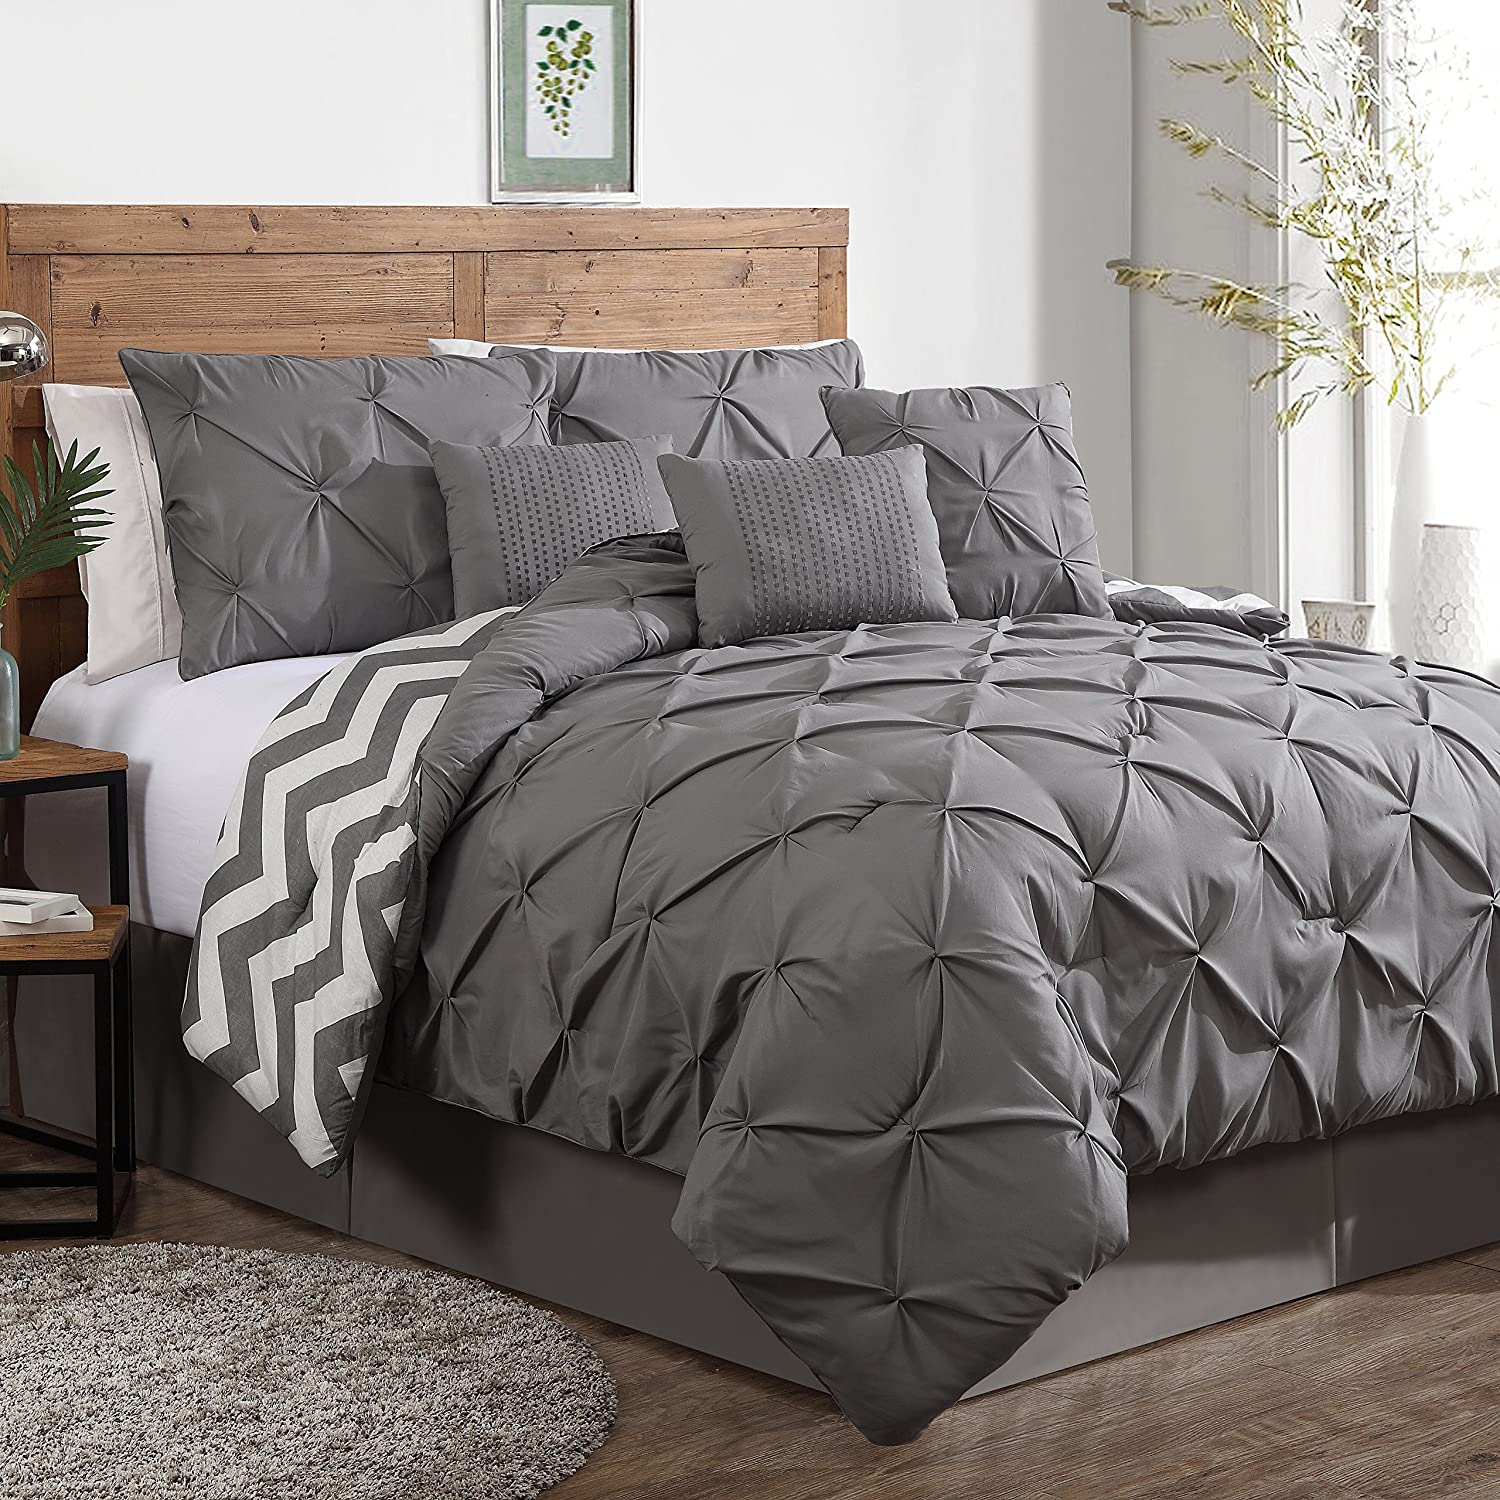 home kitchen comforter queen set manor fashion piece ella geneva amazon grey avondale dp pinch pleat com